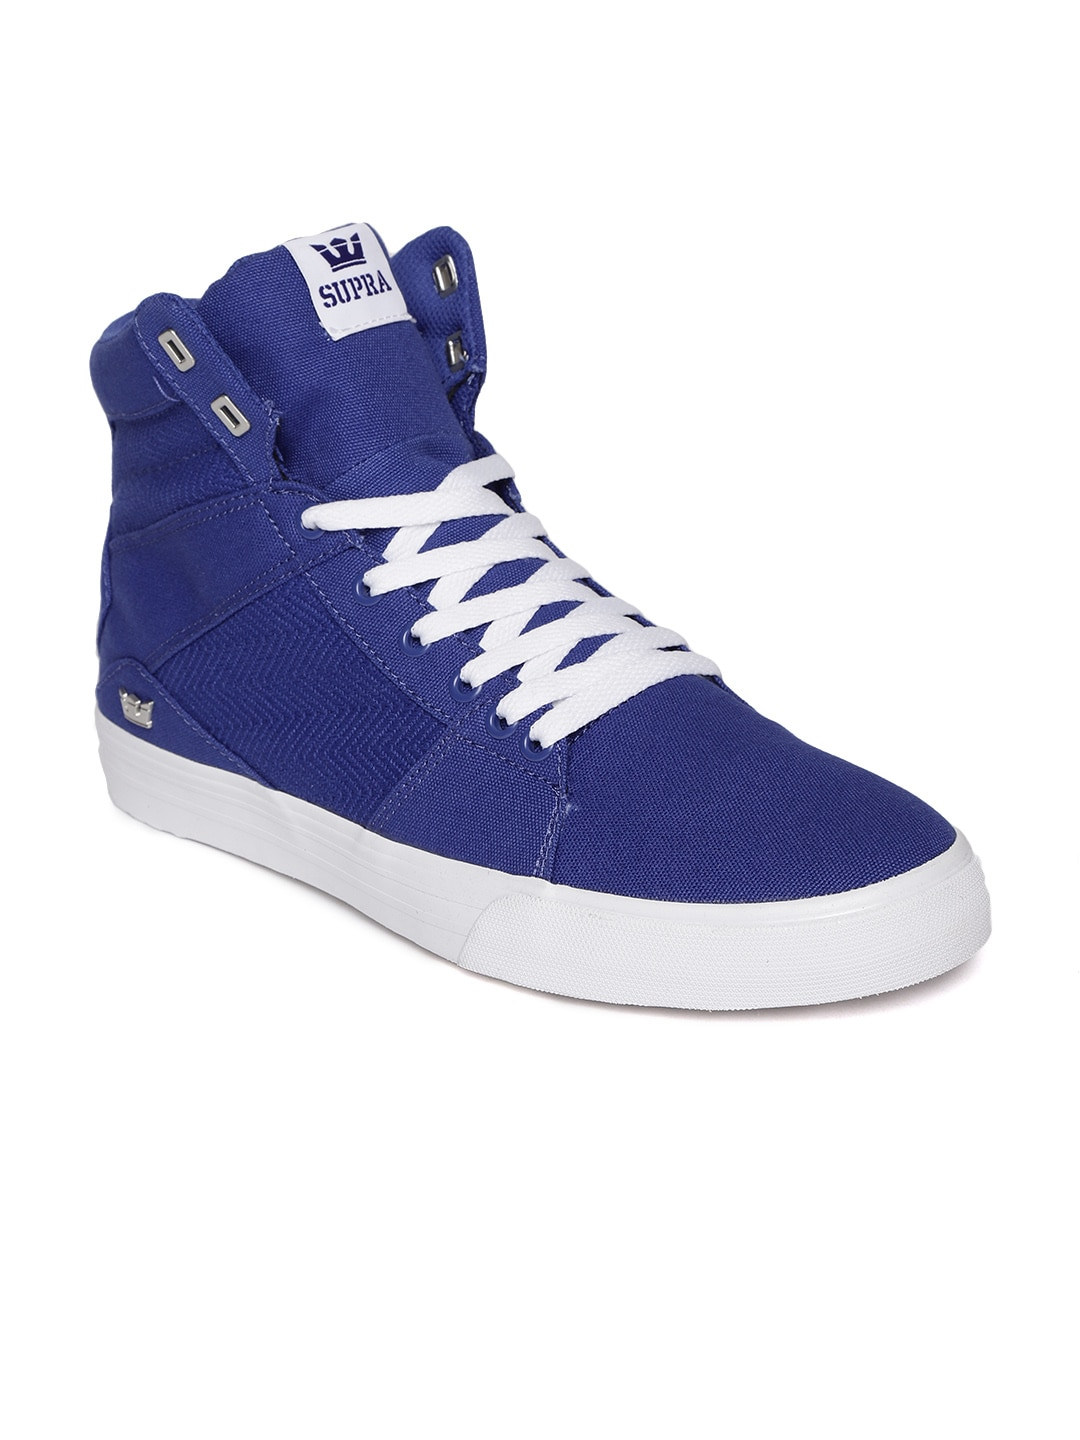 b7326e353b7 Supra Shoes - Buy Supra Shoes & Sneakers Online in India | Myntra